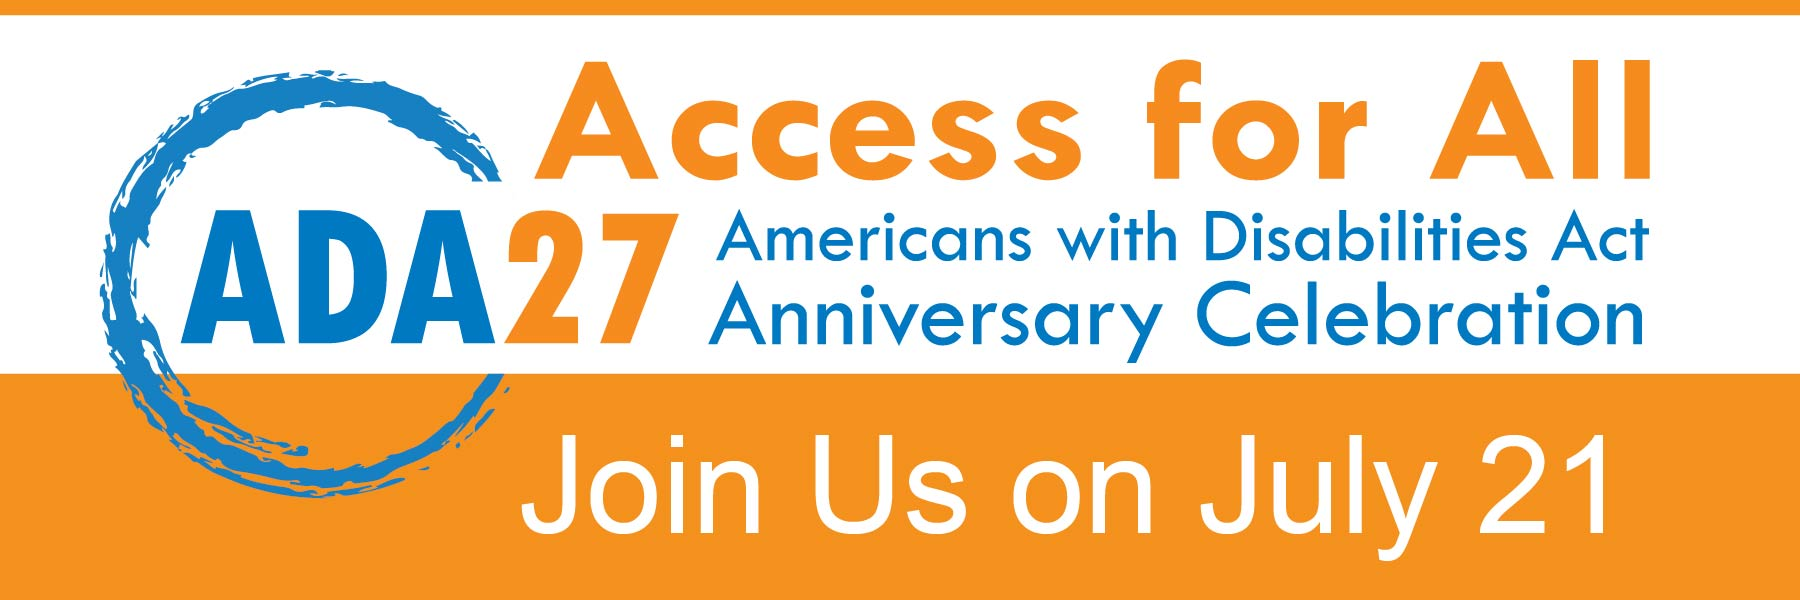 Access for All / ADA 27